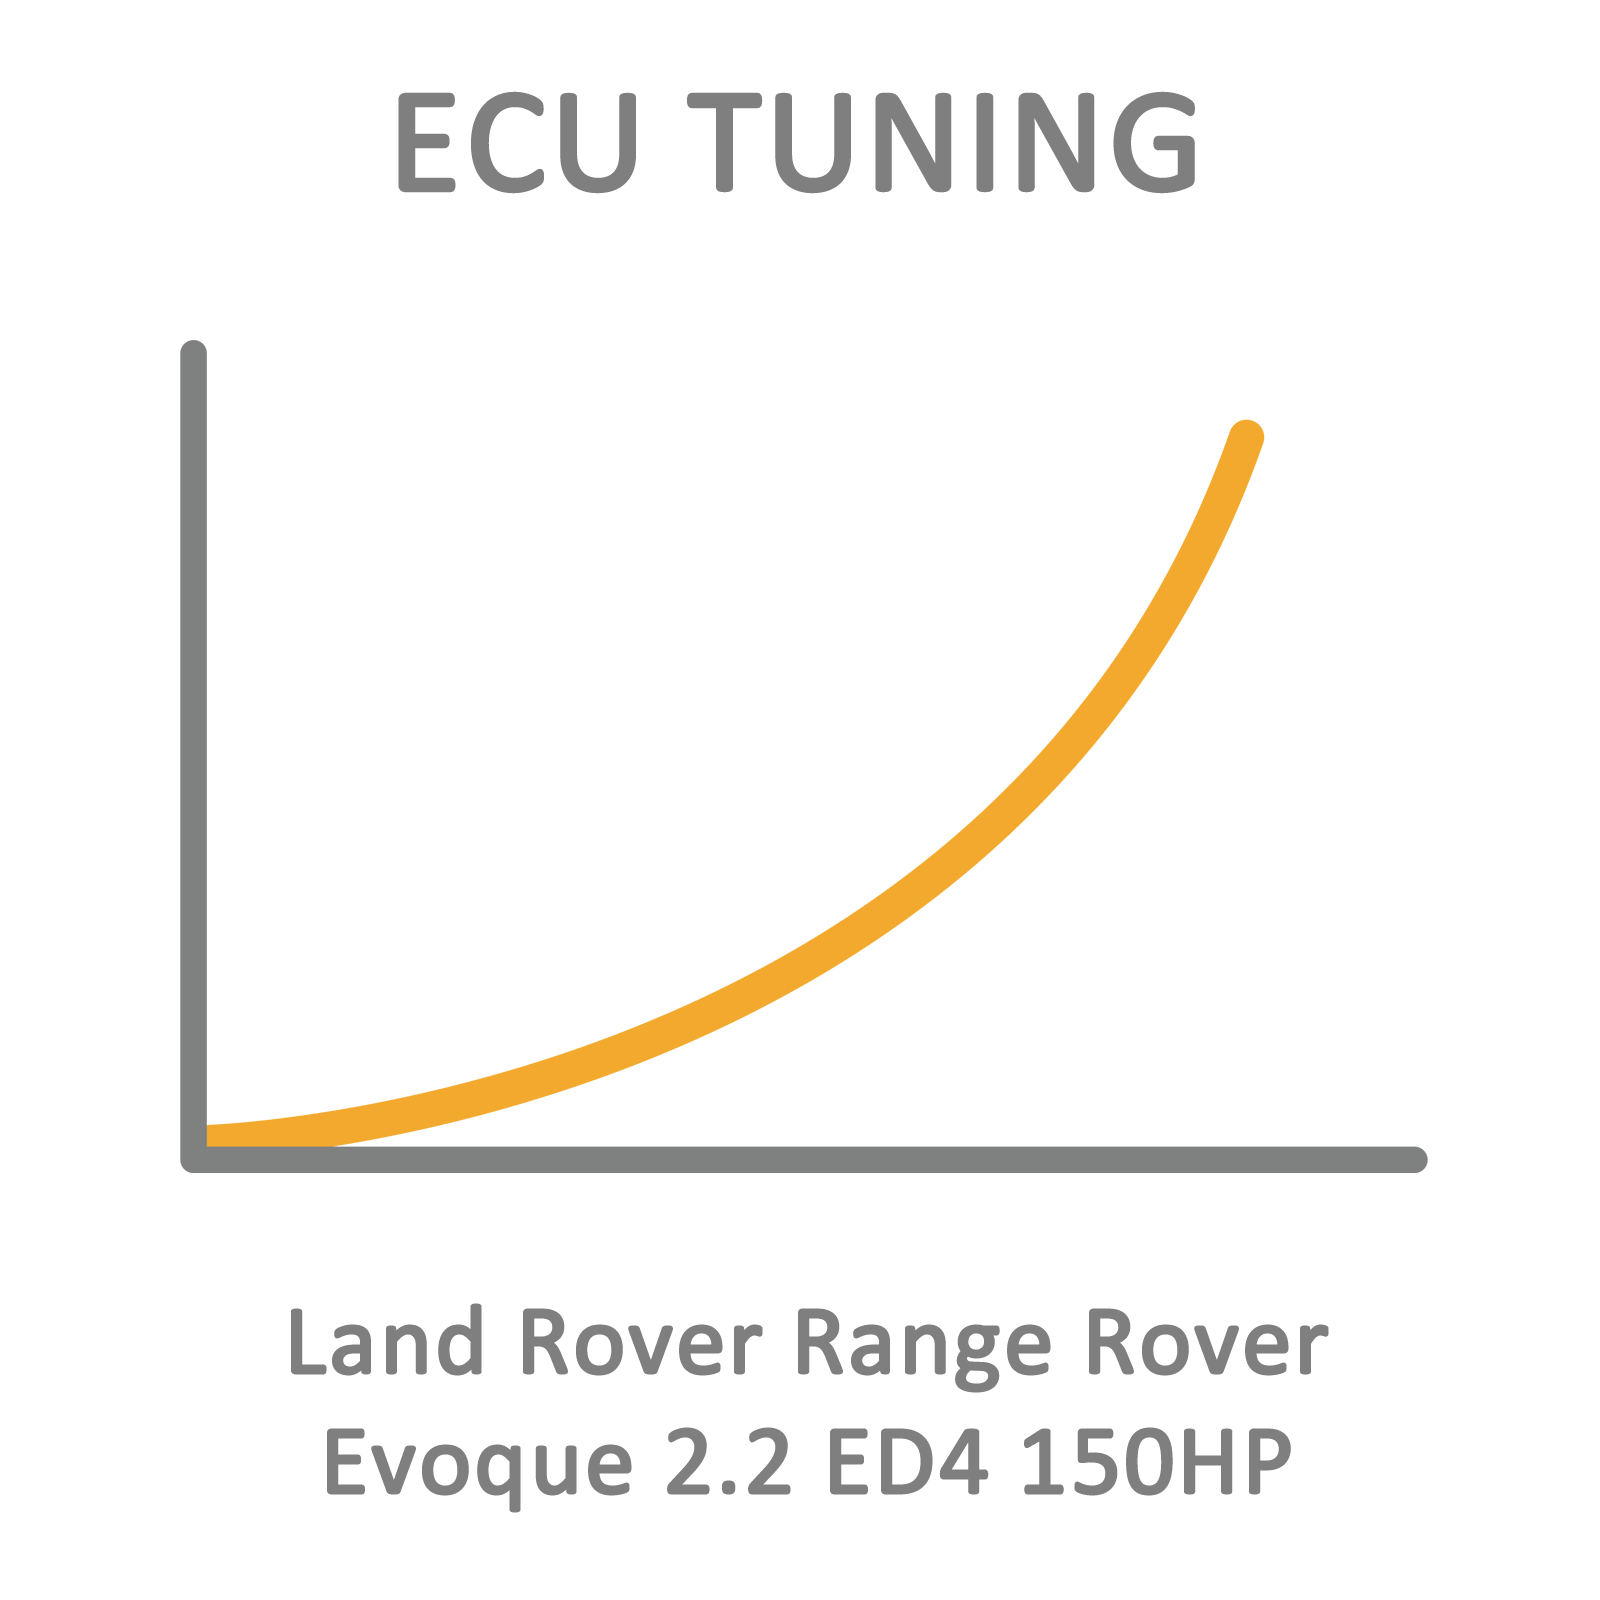 Land Rover Range Rover Evoque 2.2 ED4 150HP ECU Tuning